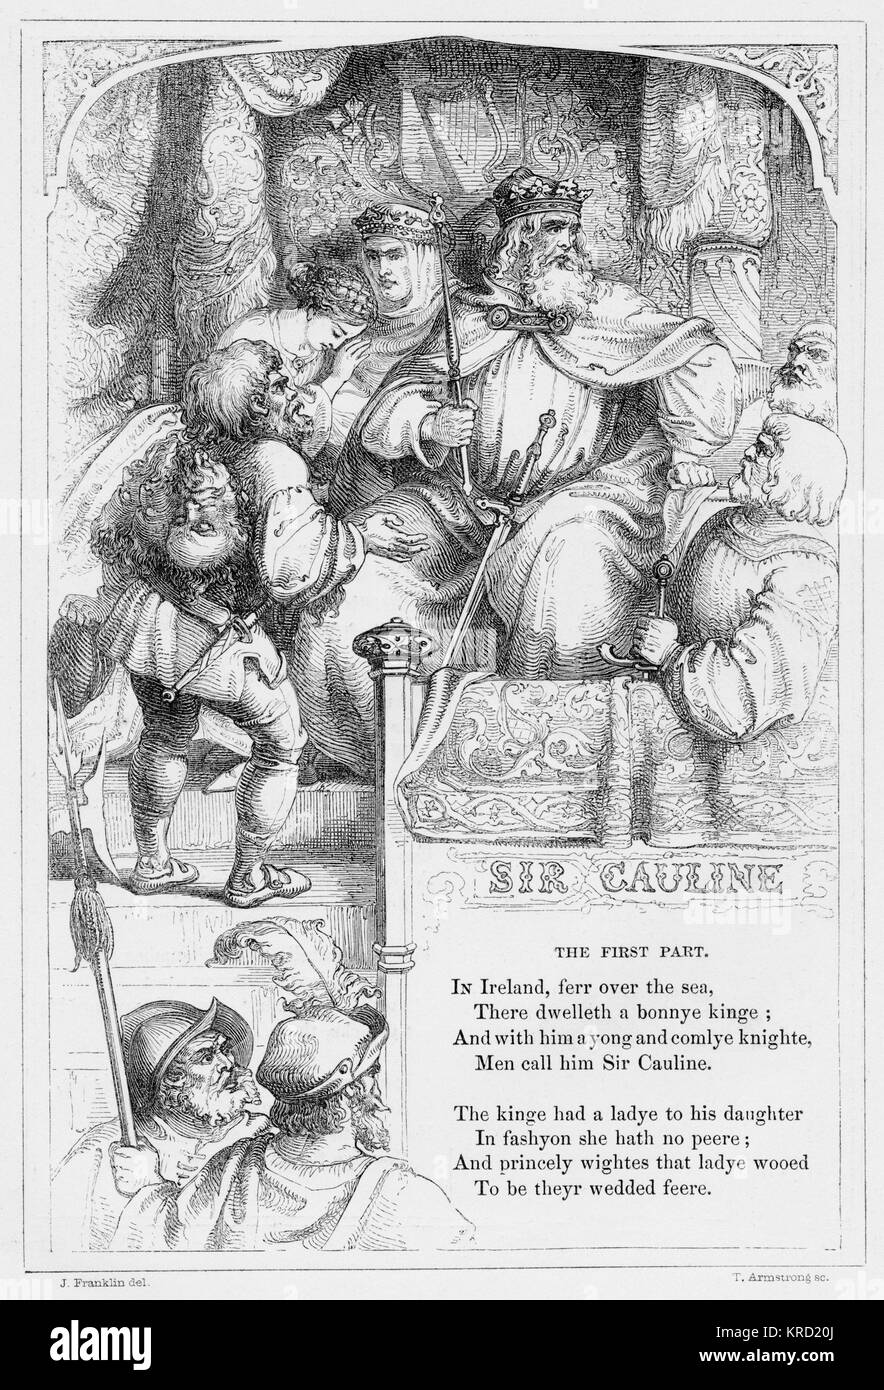 SIR CAULINE (Sir Cawline)  British ballad telling the story of Sir Cawline who is in love with the king's daughter. - Stock Image